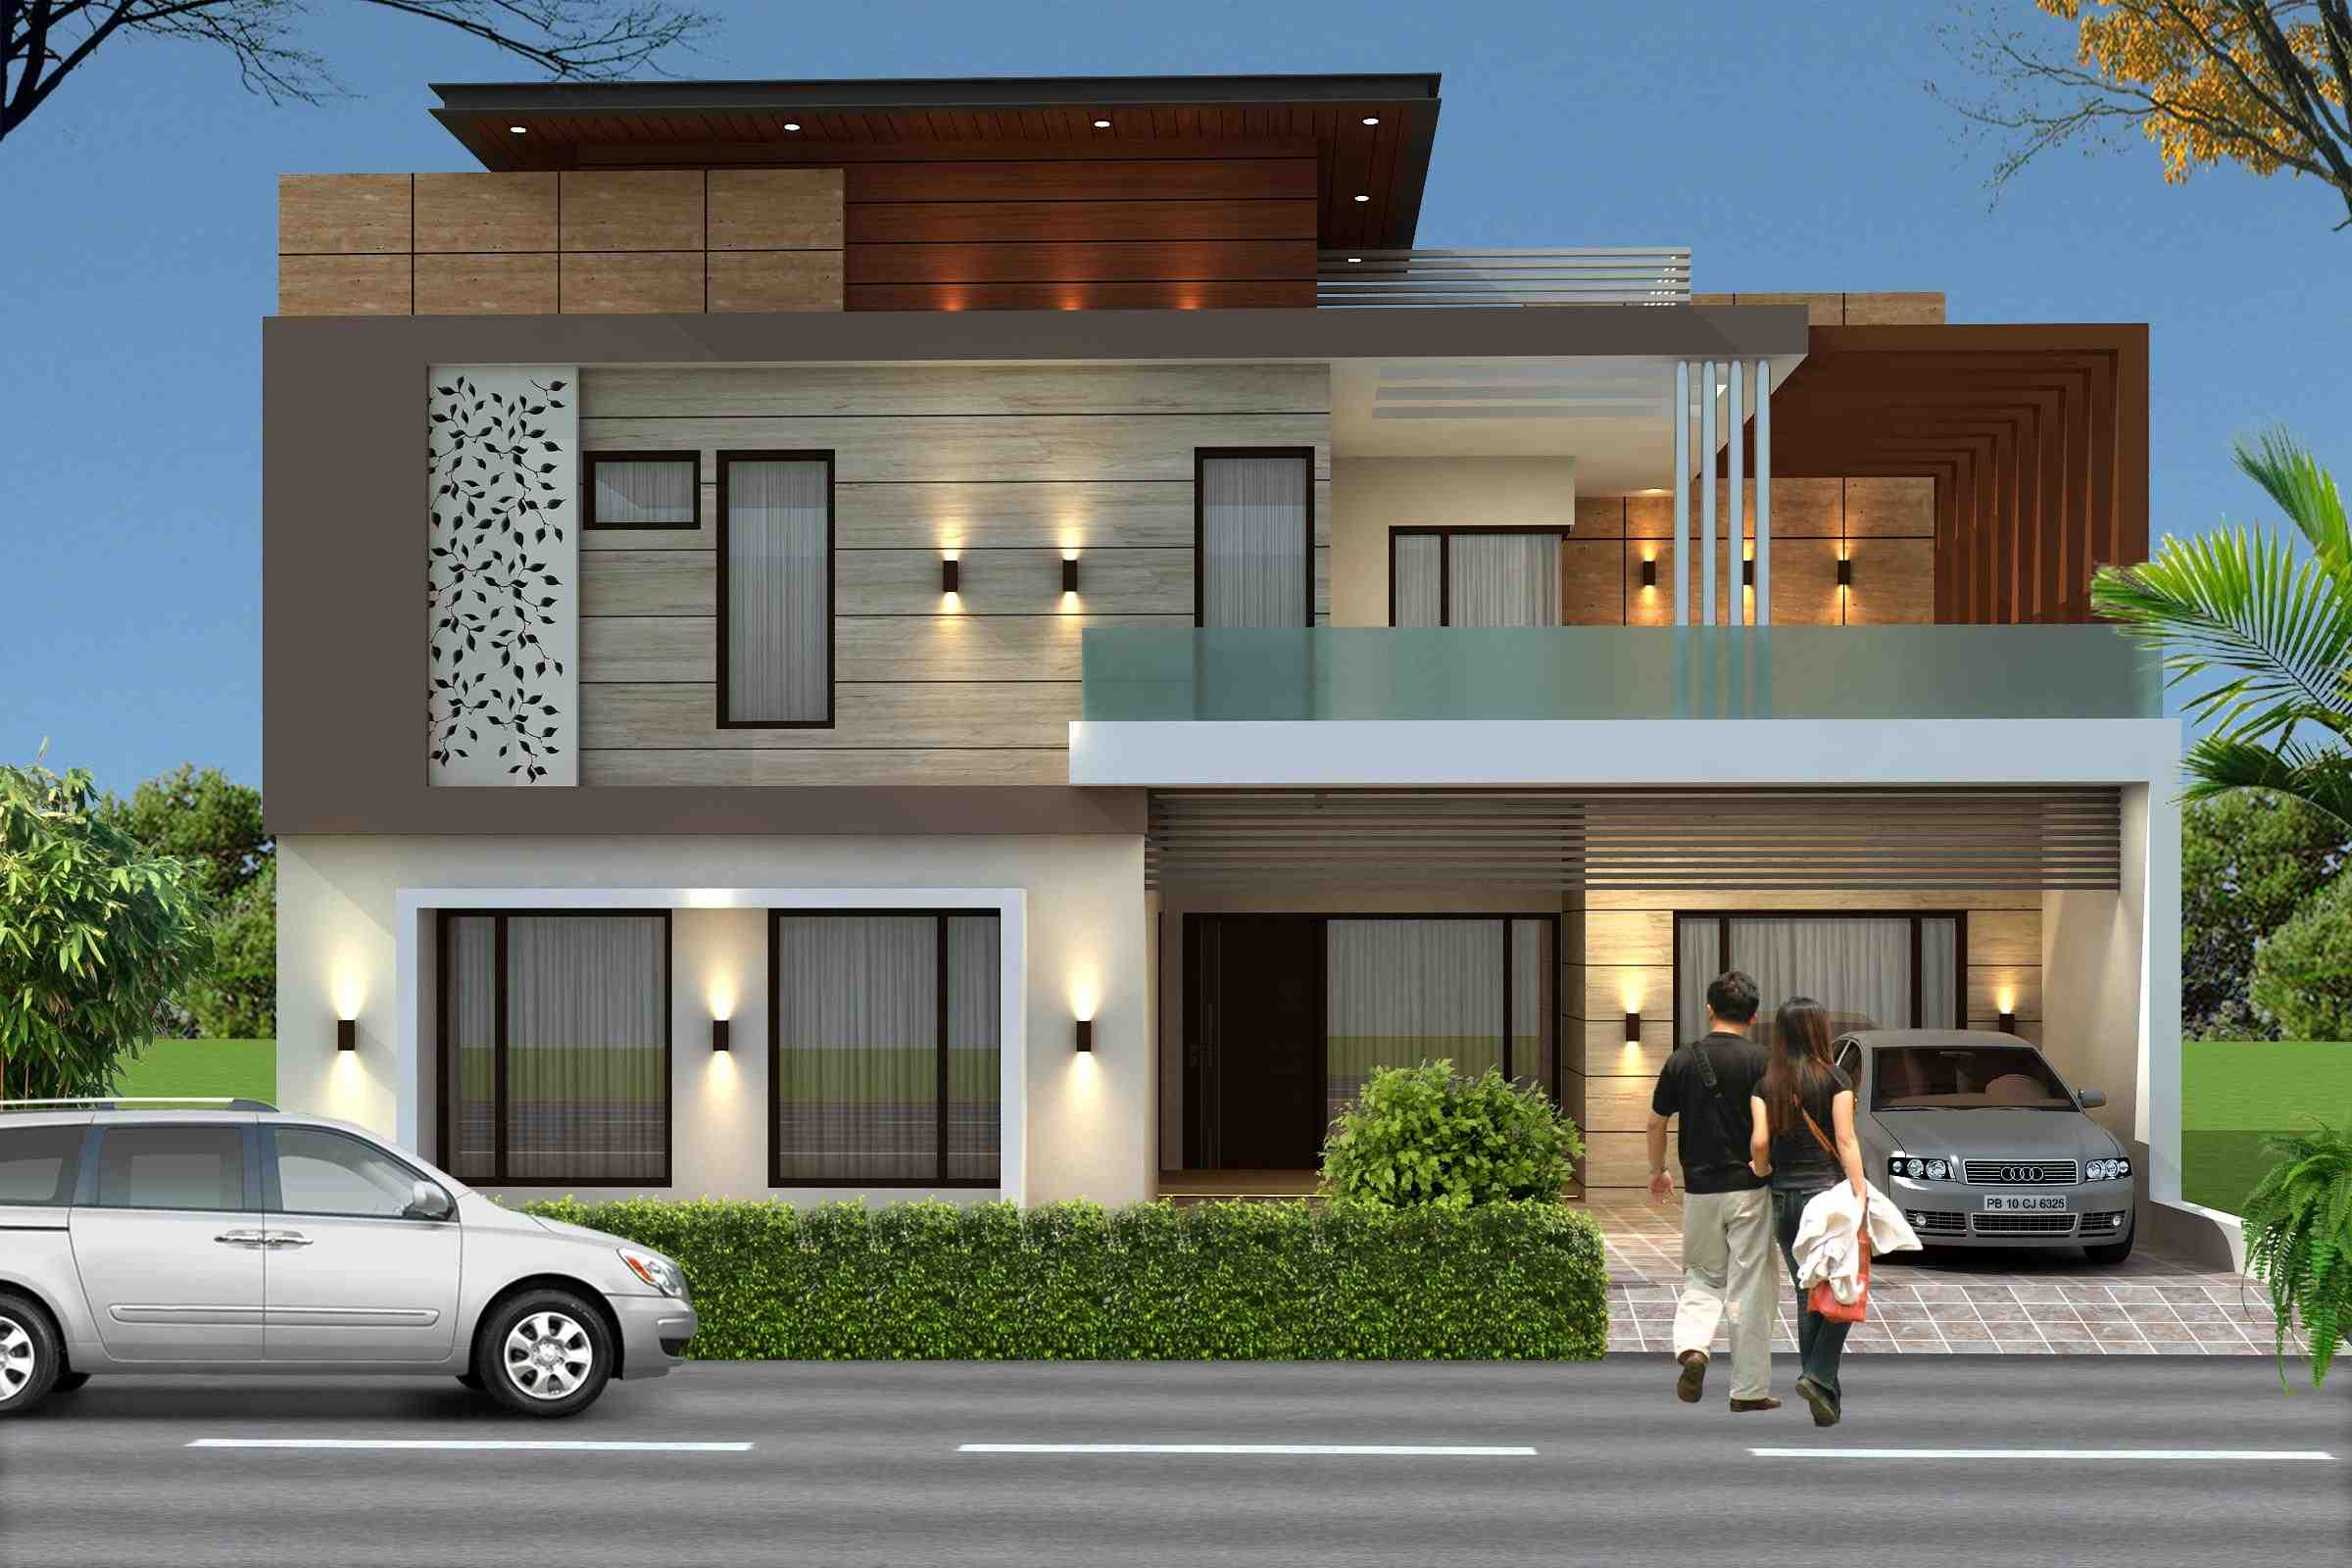 List Of Famous Architects projects - jagmohan singh & associates - architects in amritsar